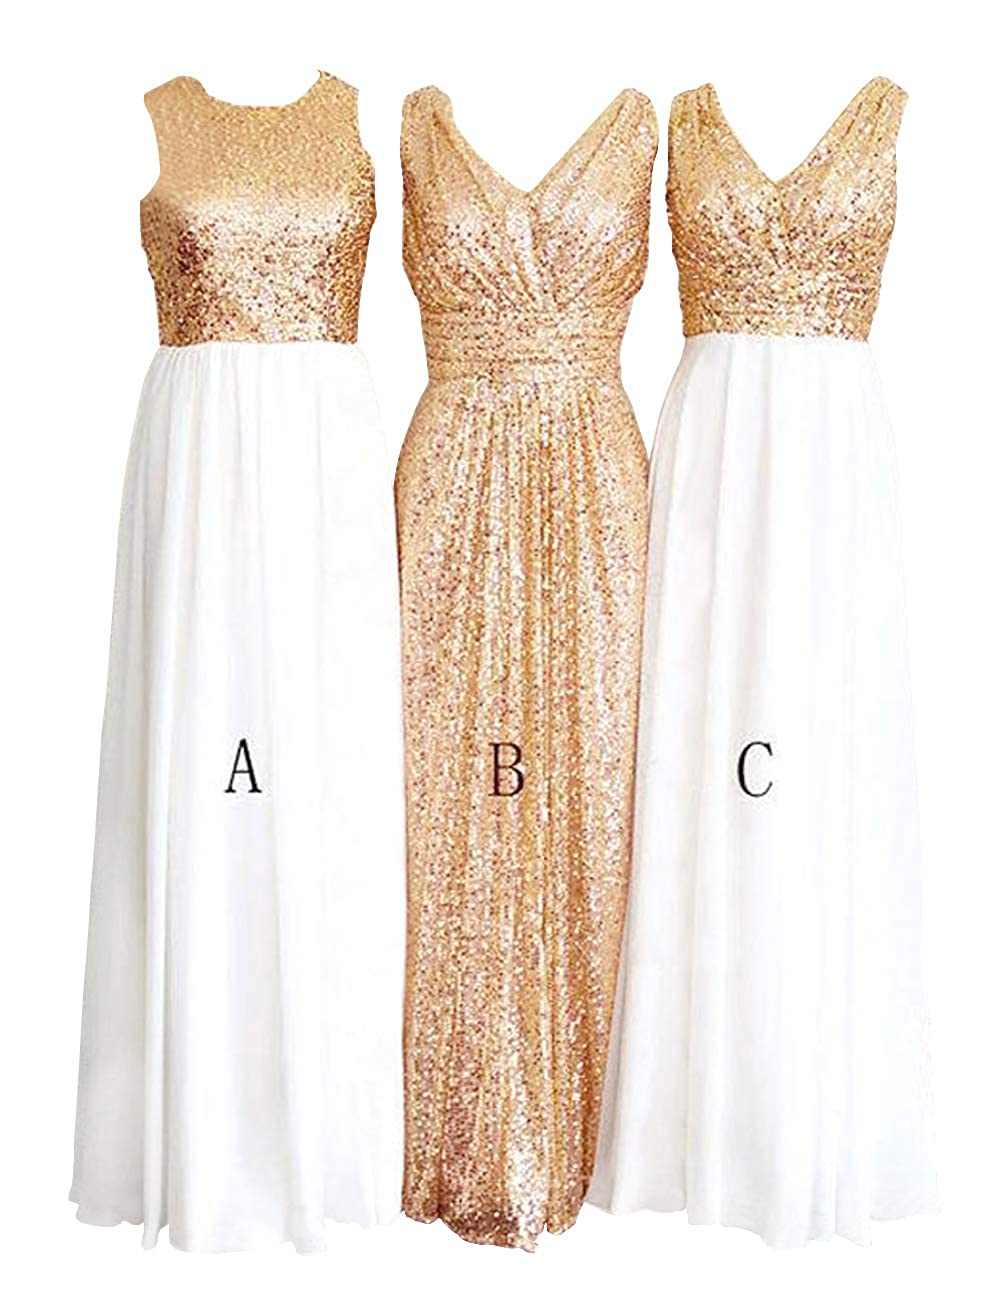 Awhite and Champagne H.S.D Women's pink gold Sequins Paillettes Long Bridesmaid Party Prom Dress